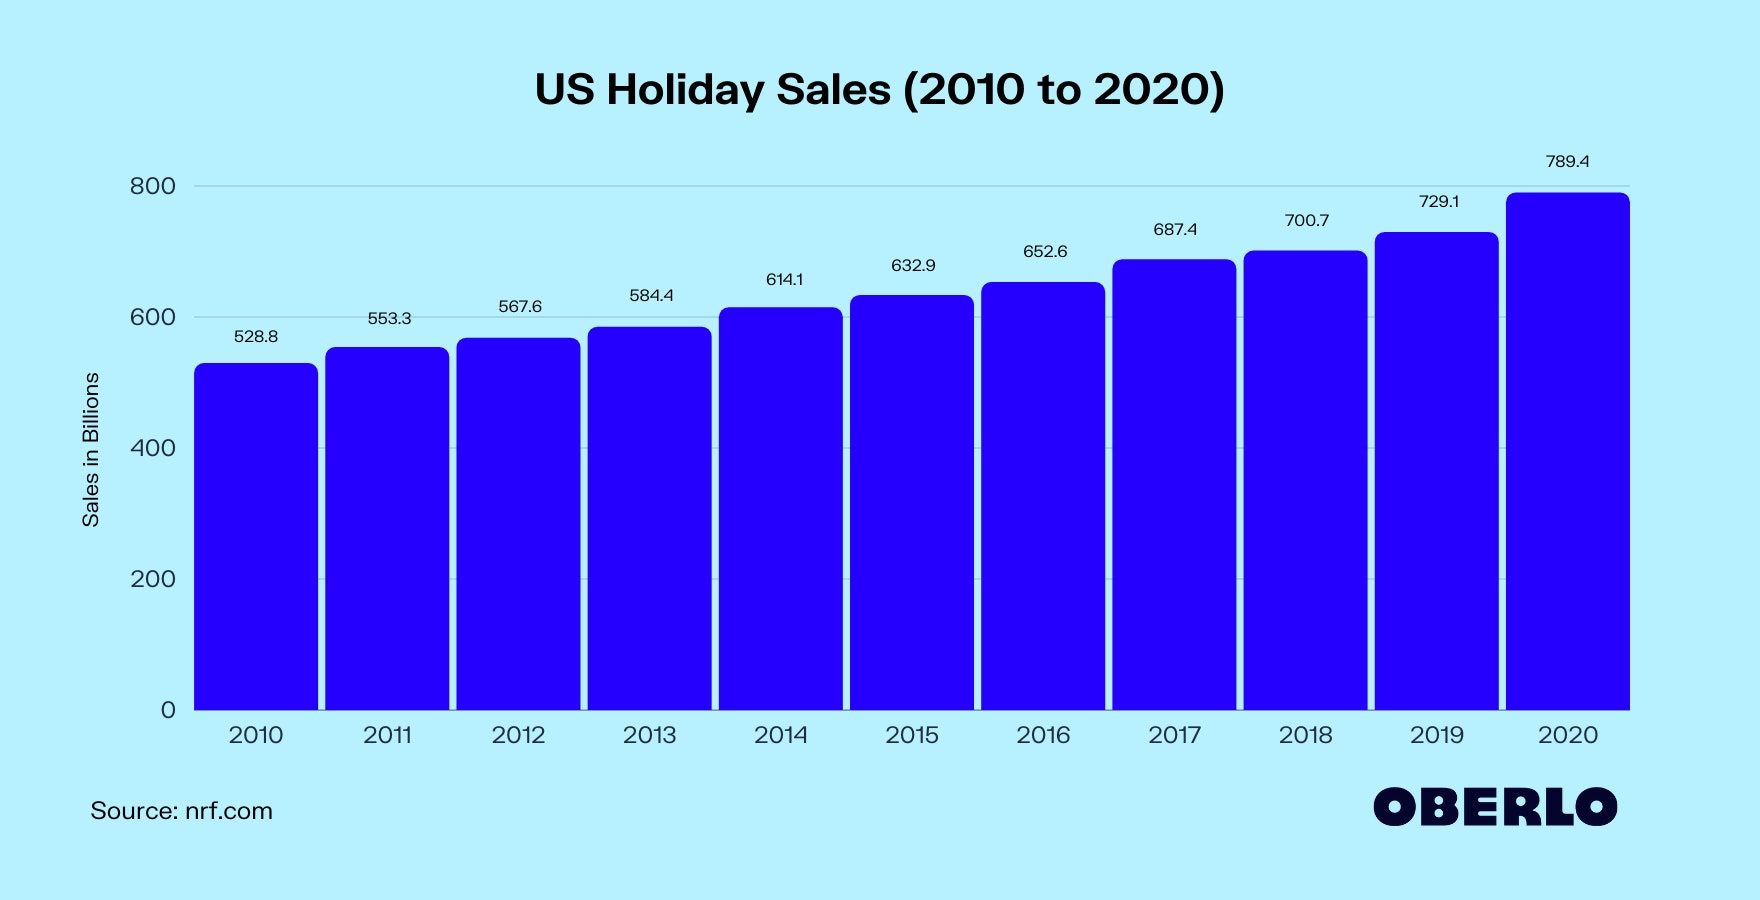 US Holiday Retail Sales (2010 to 2020)